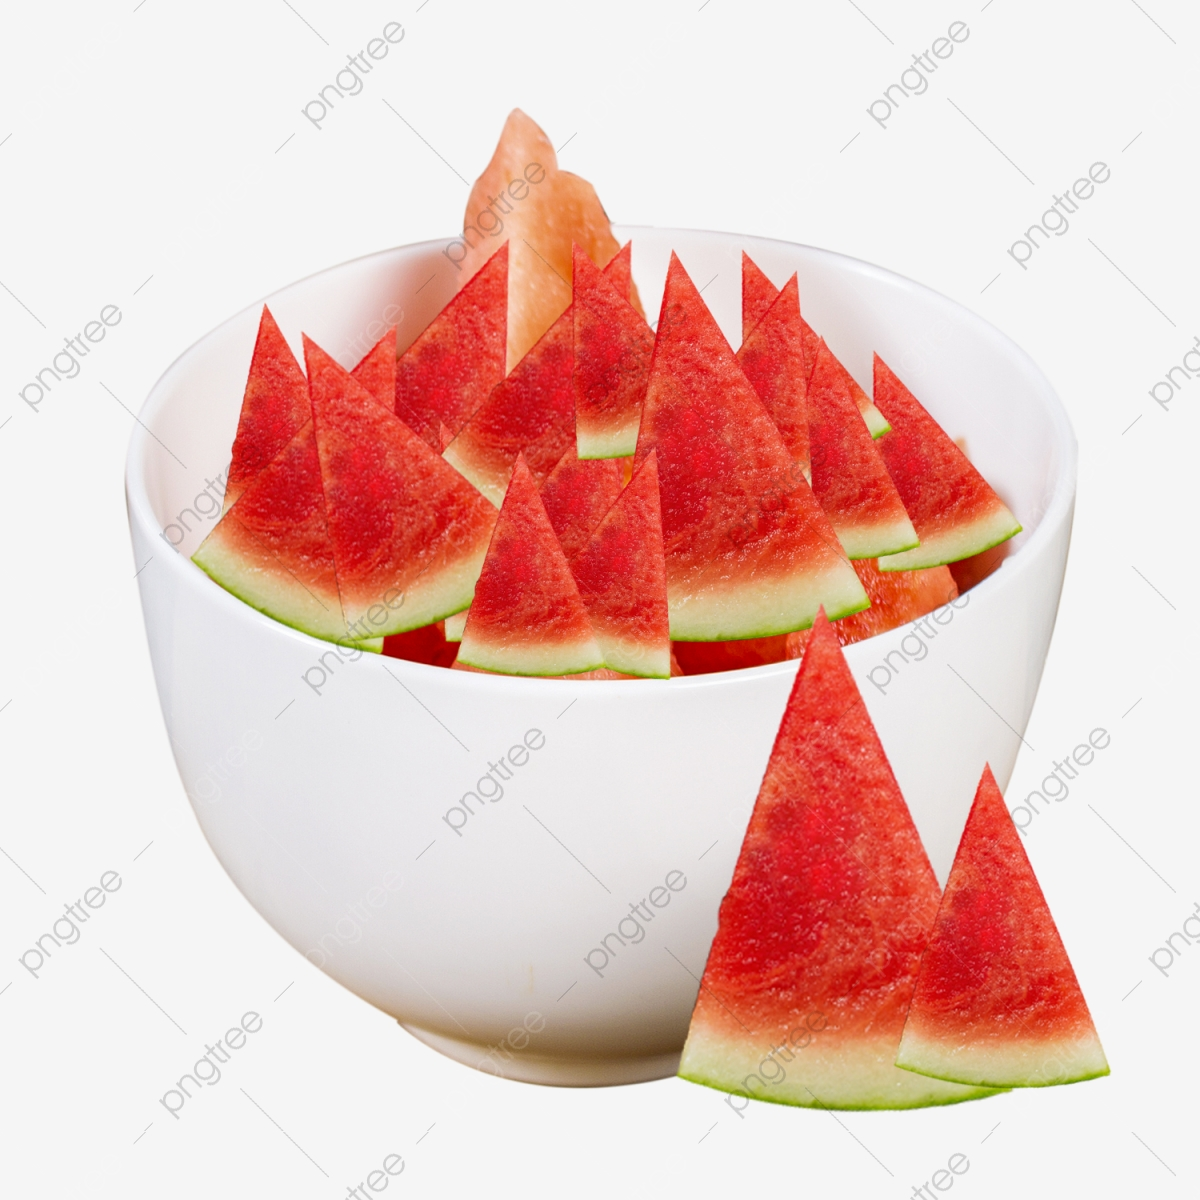 Watermelon Slice On Bowl Watermelon Clipart Sweet Fresh Png Transparent Clipart Image And Psd File For Free Download